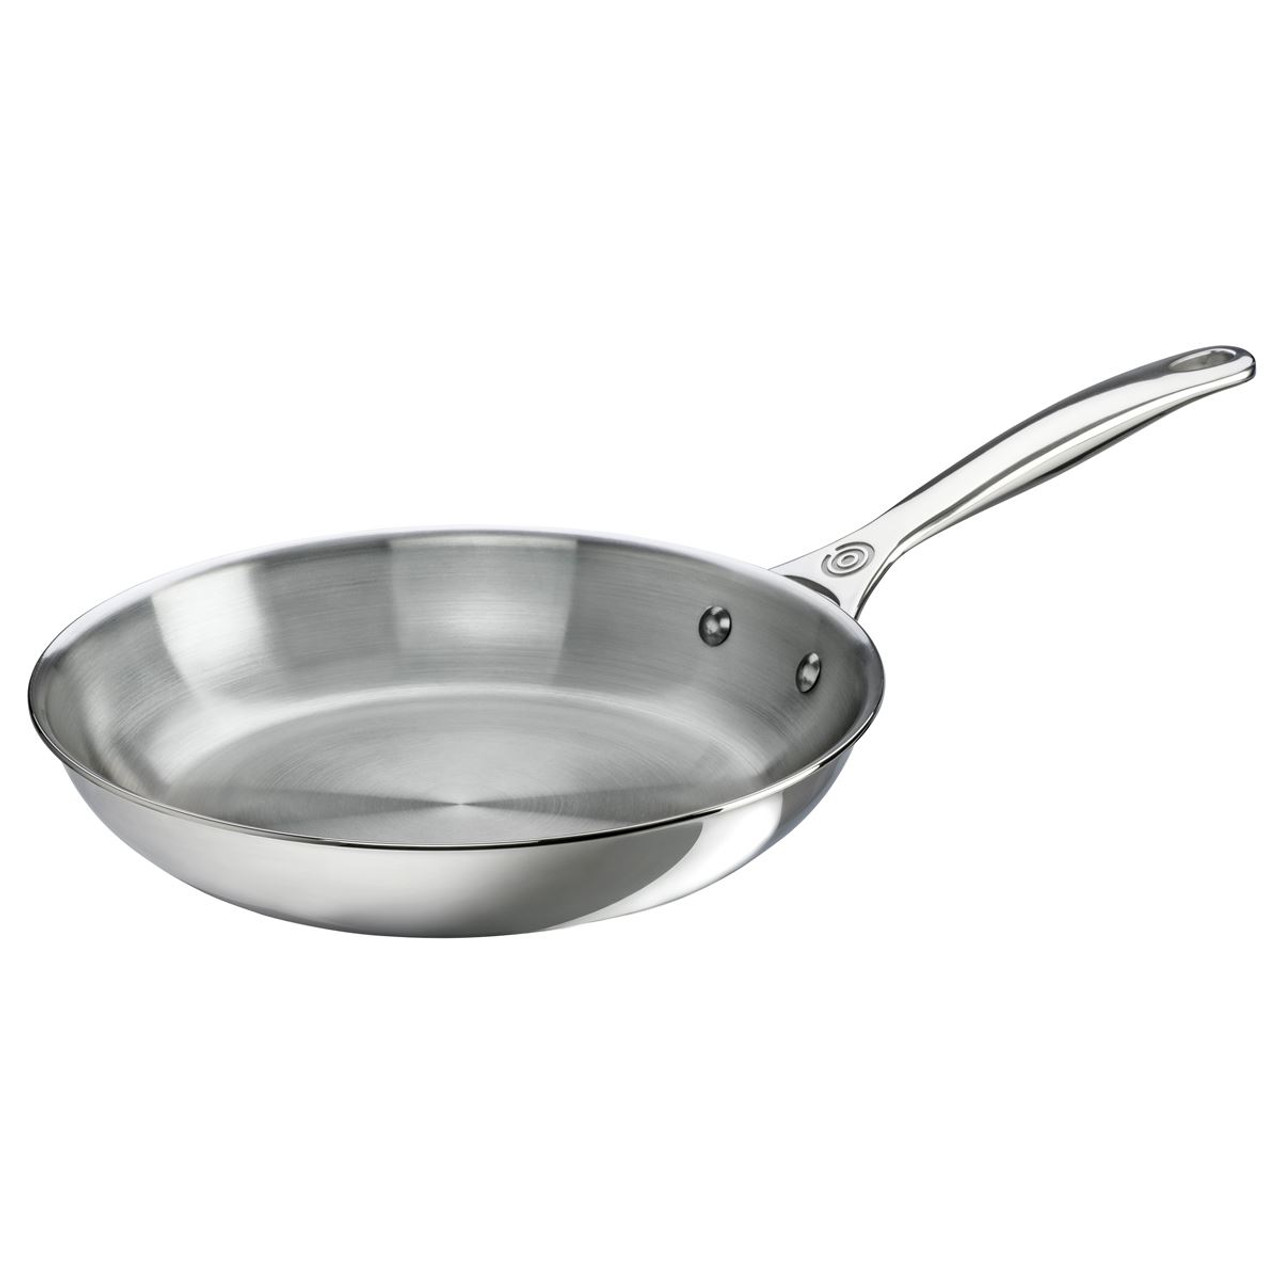 Le Creuset 26cm Stainless Steel Frying Pan